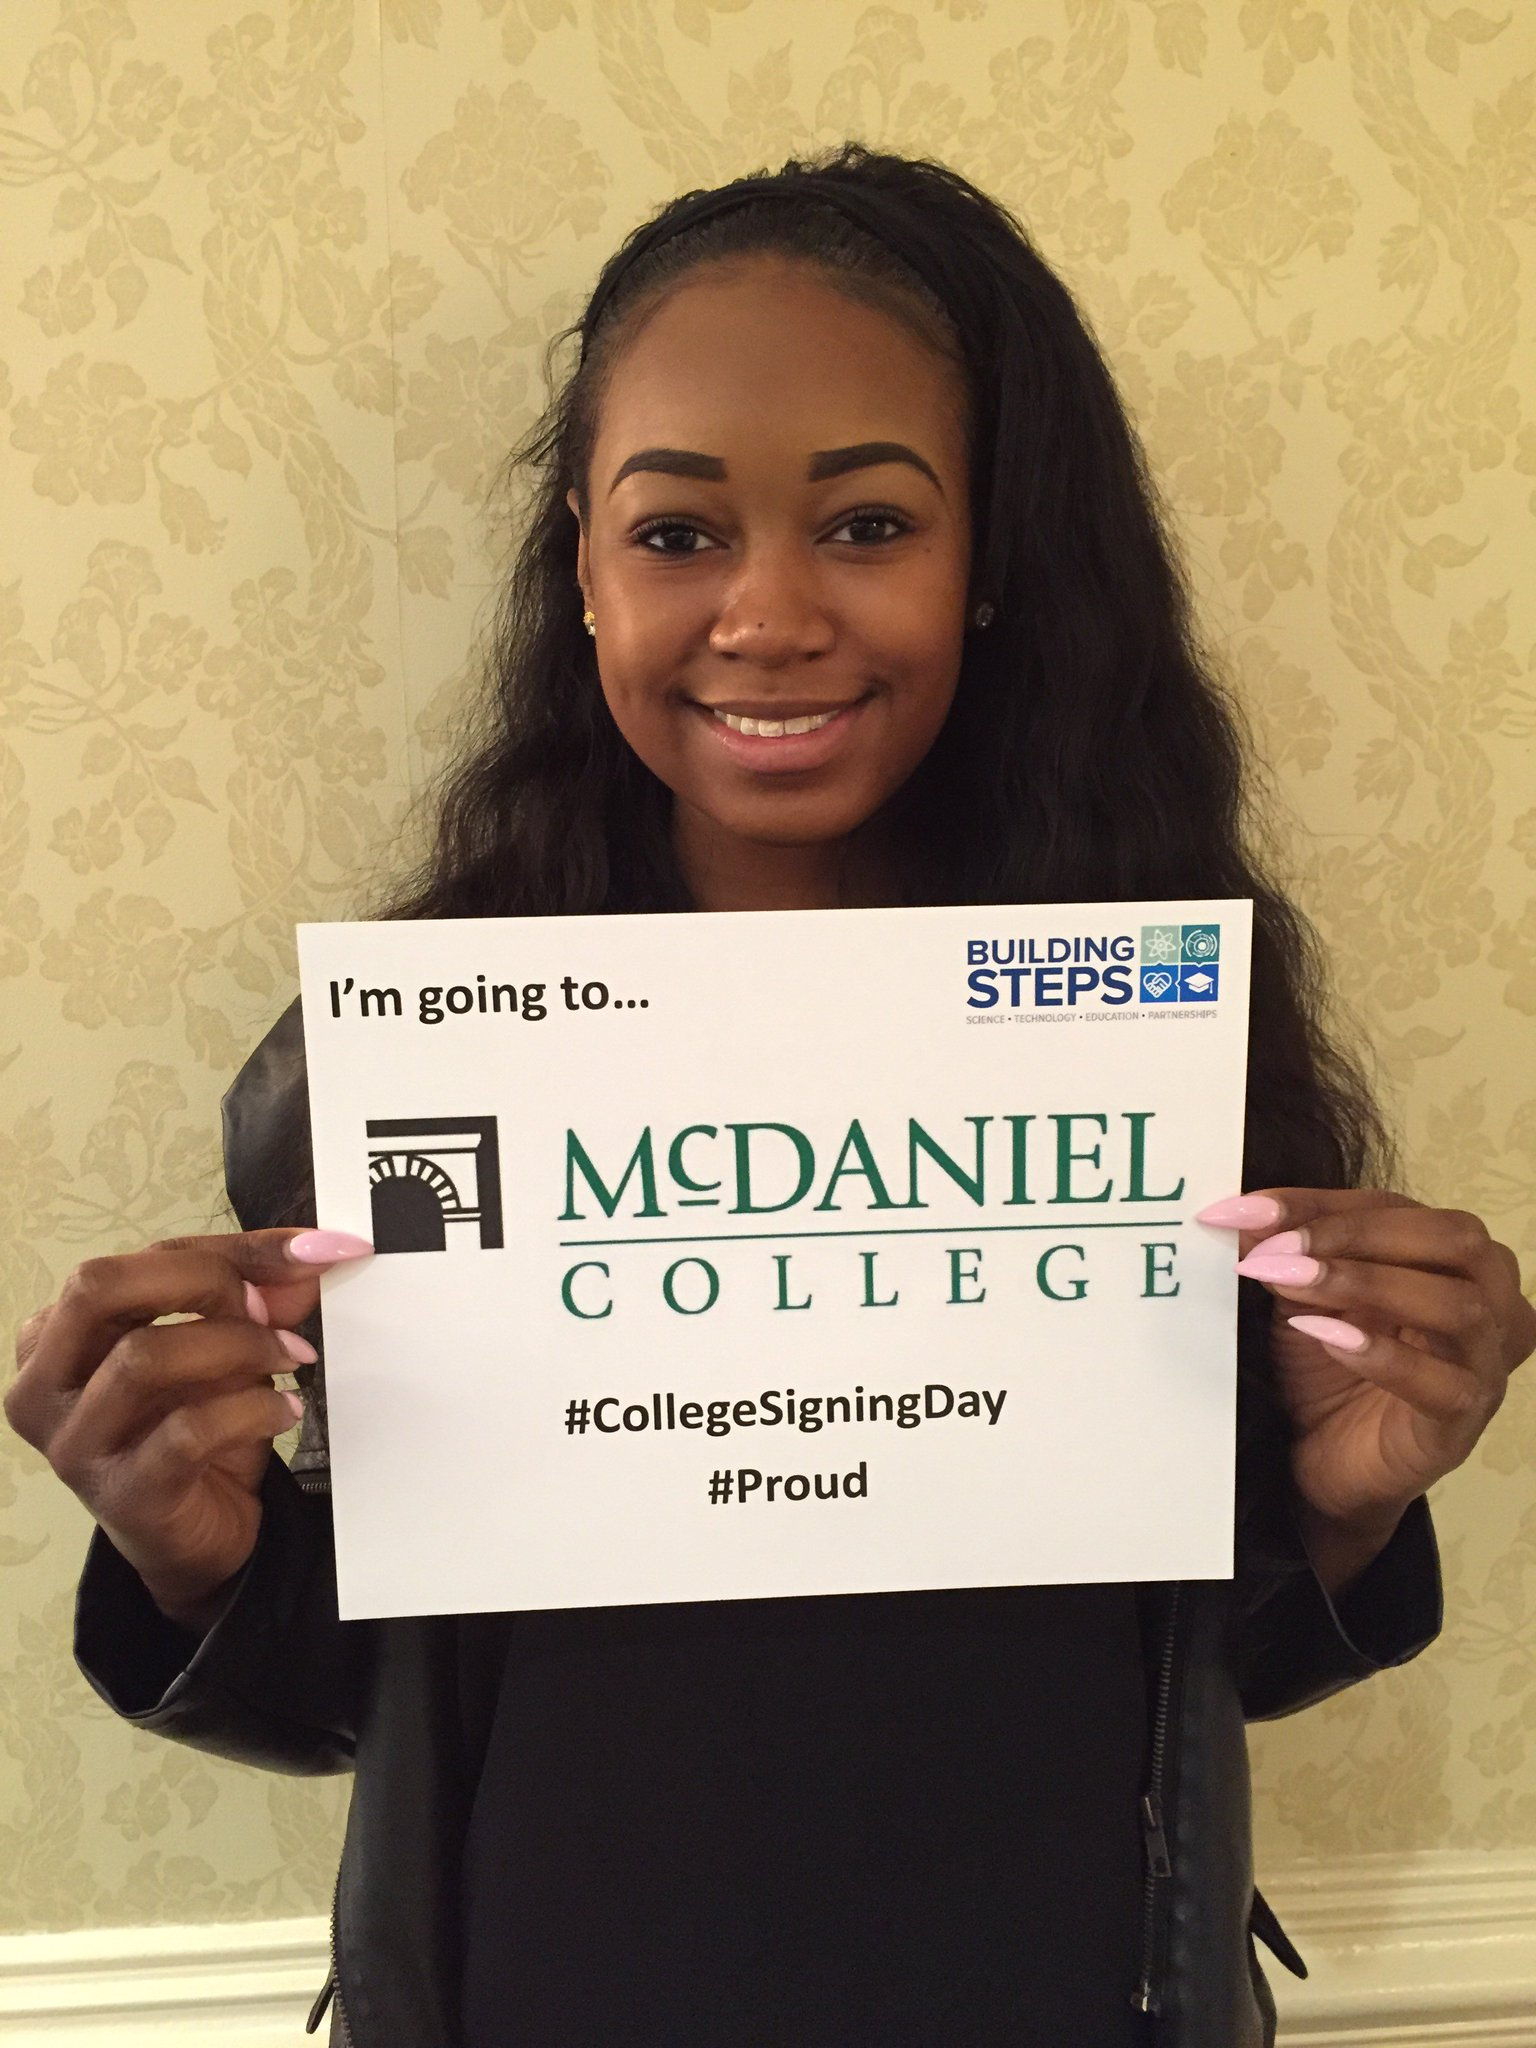 Our seniors are celebrating #CollegeSigningDay with pride! @McDanielCollege   @ReachHigher @BetterMakeRoom https://t.co/LfW0yytb90